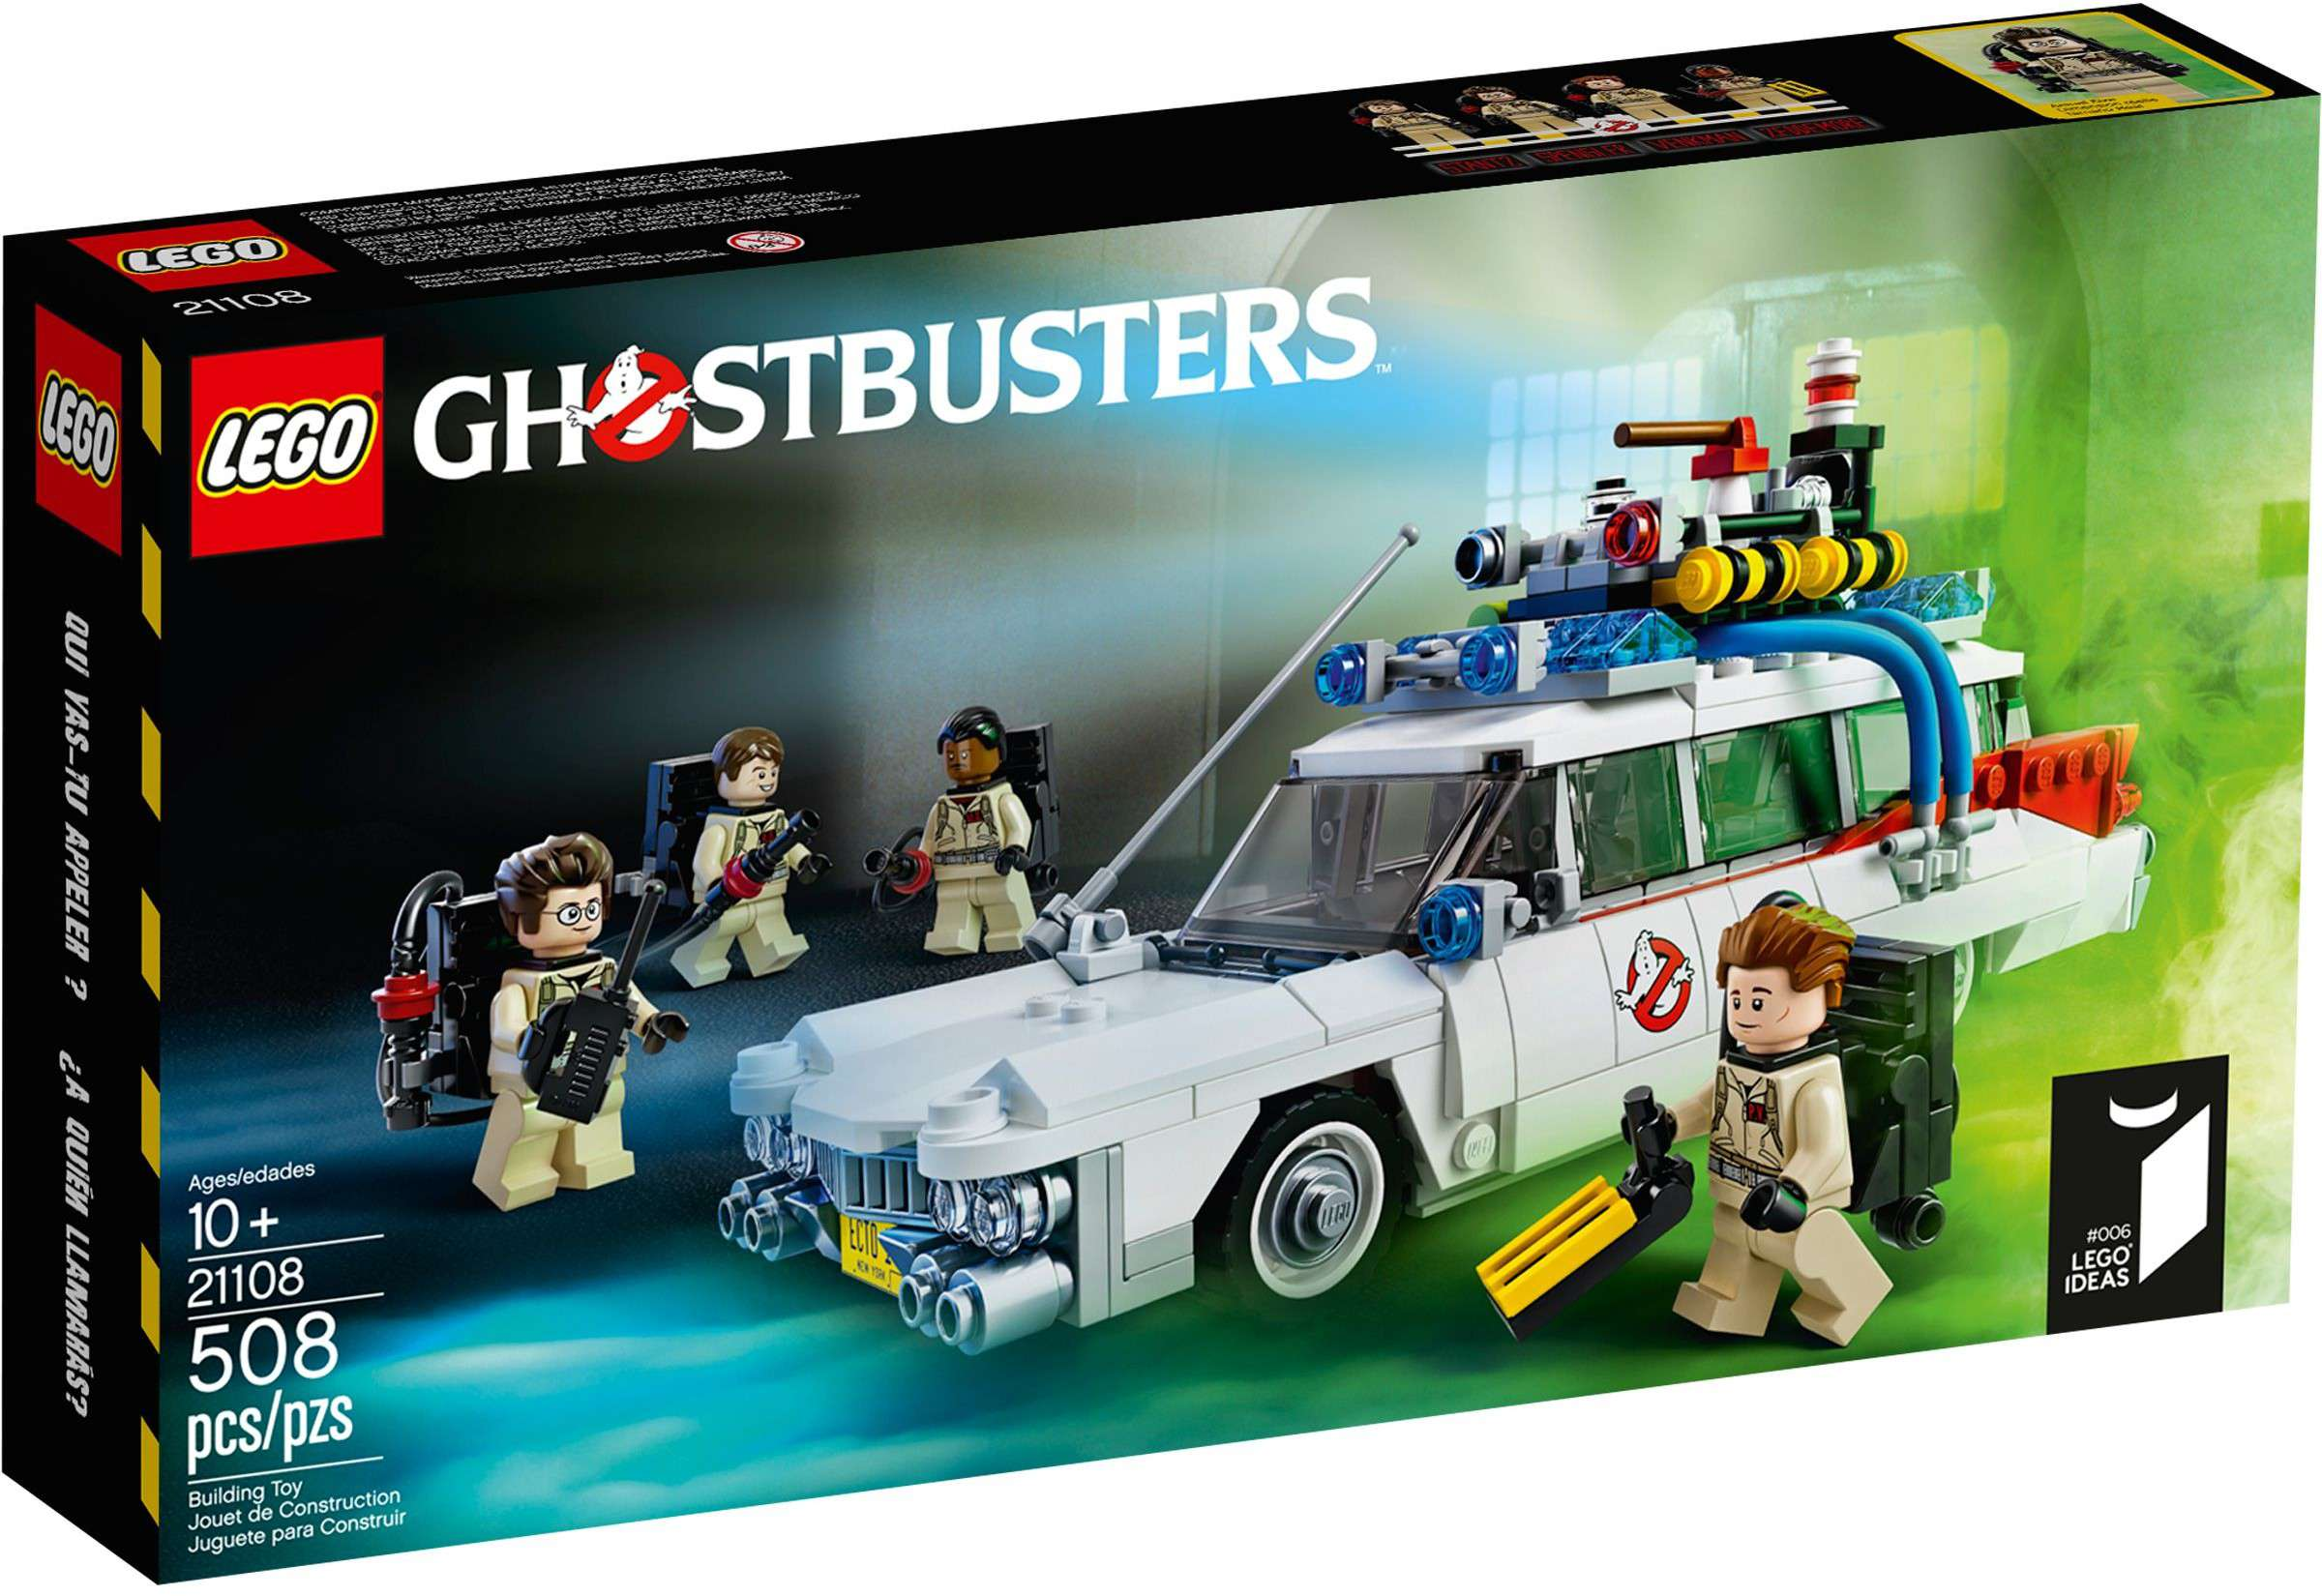 Ghostbusters Eco-1